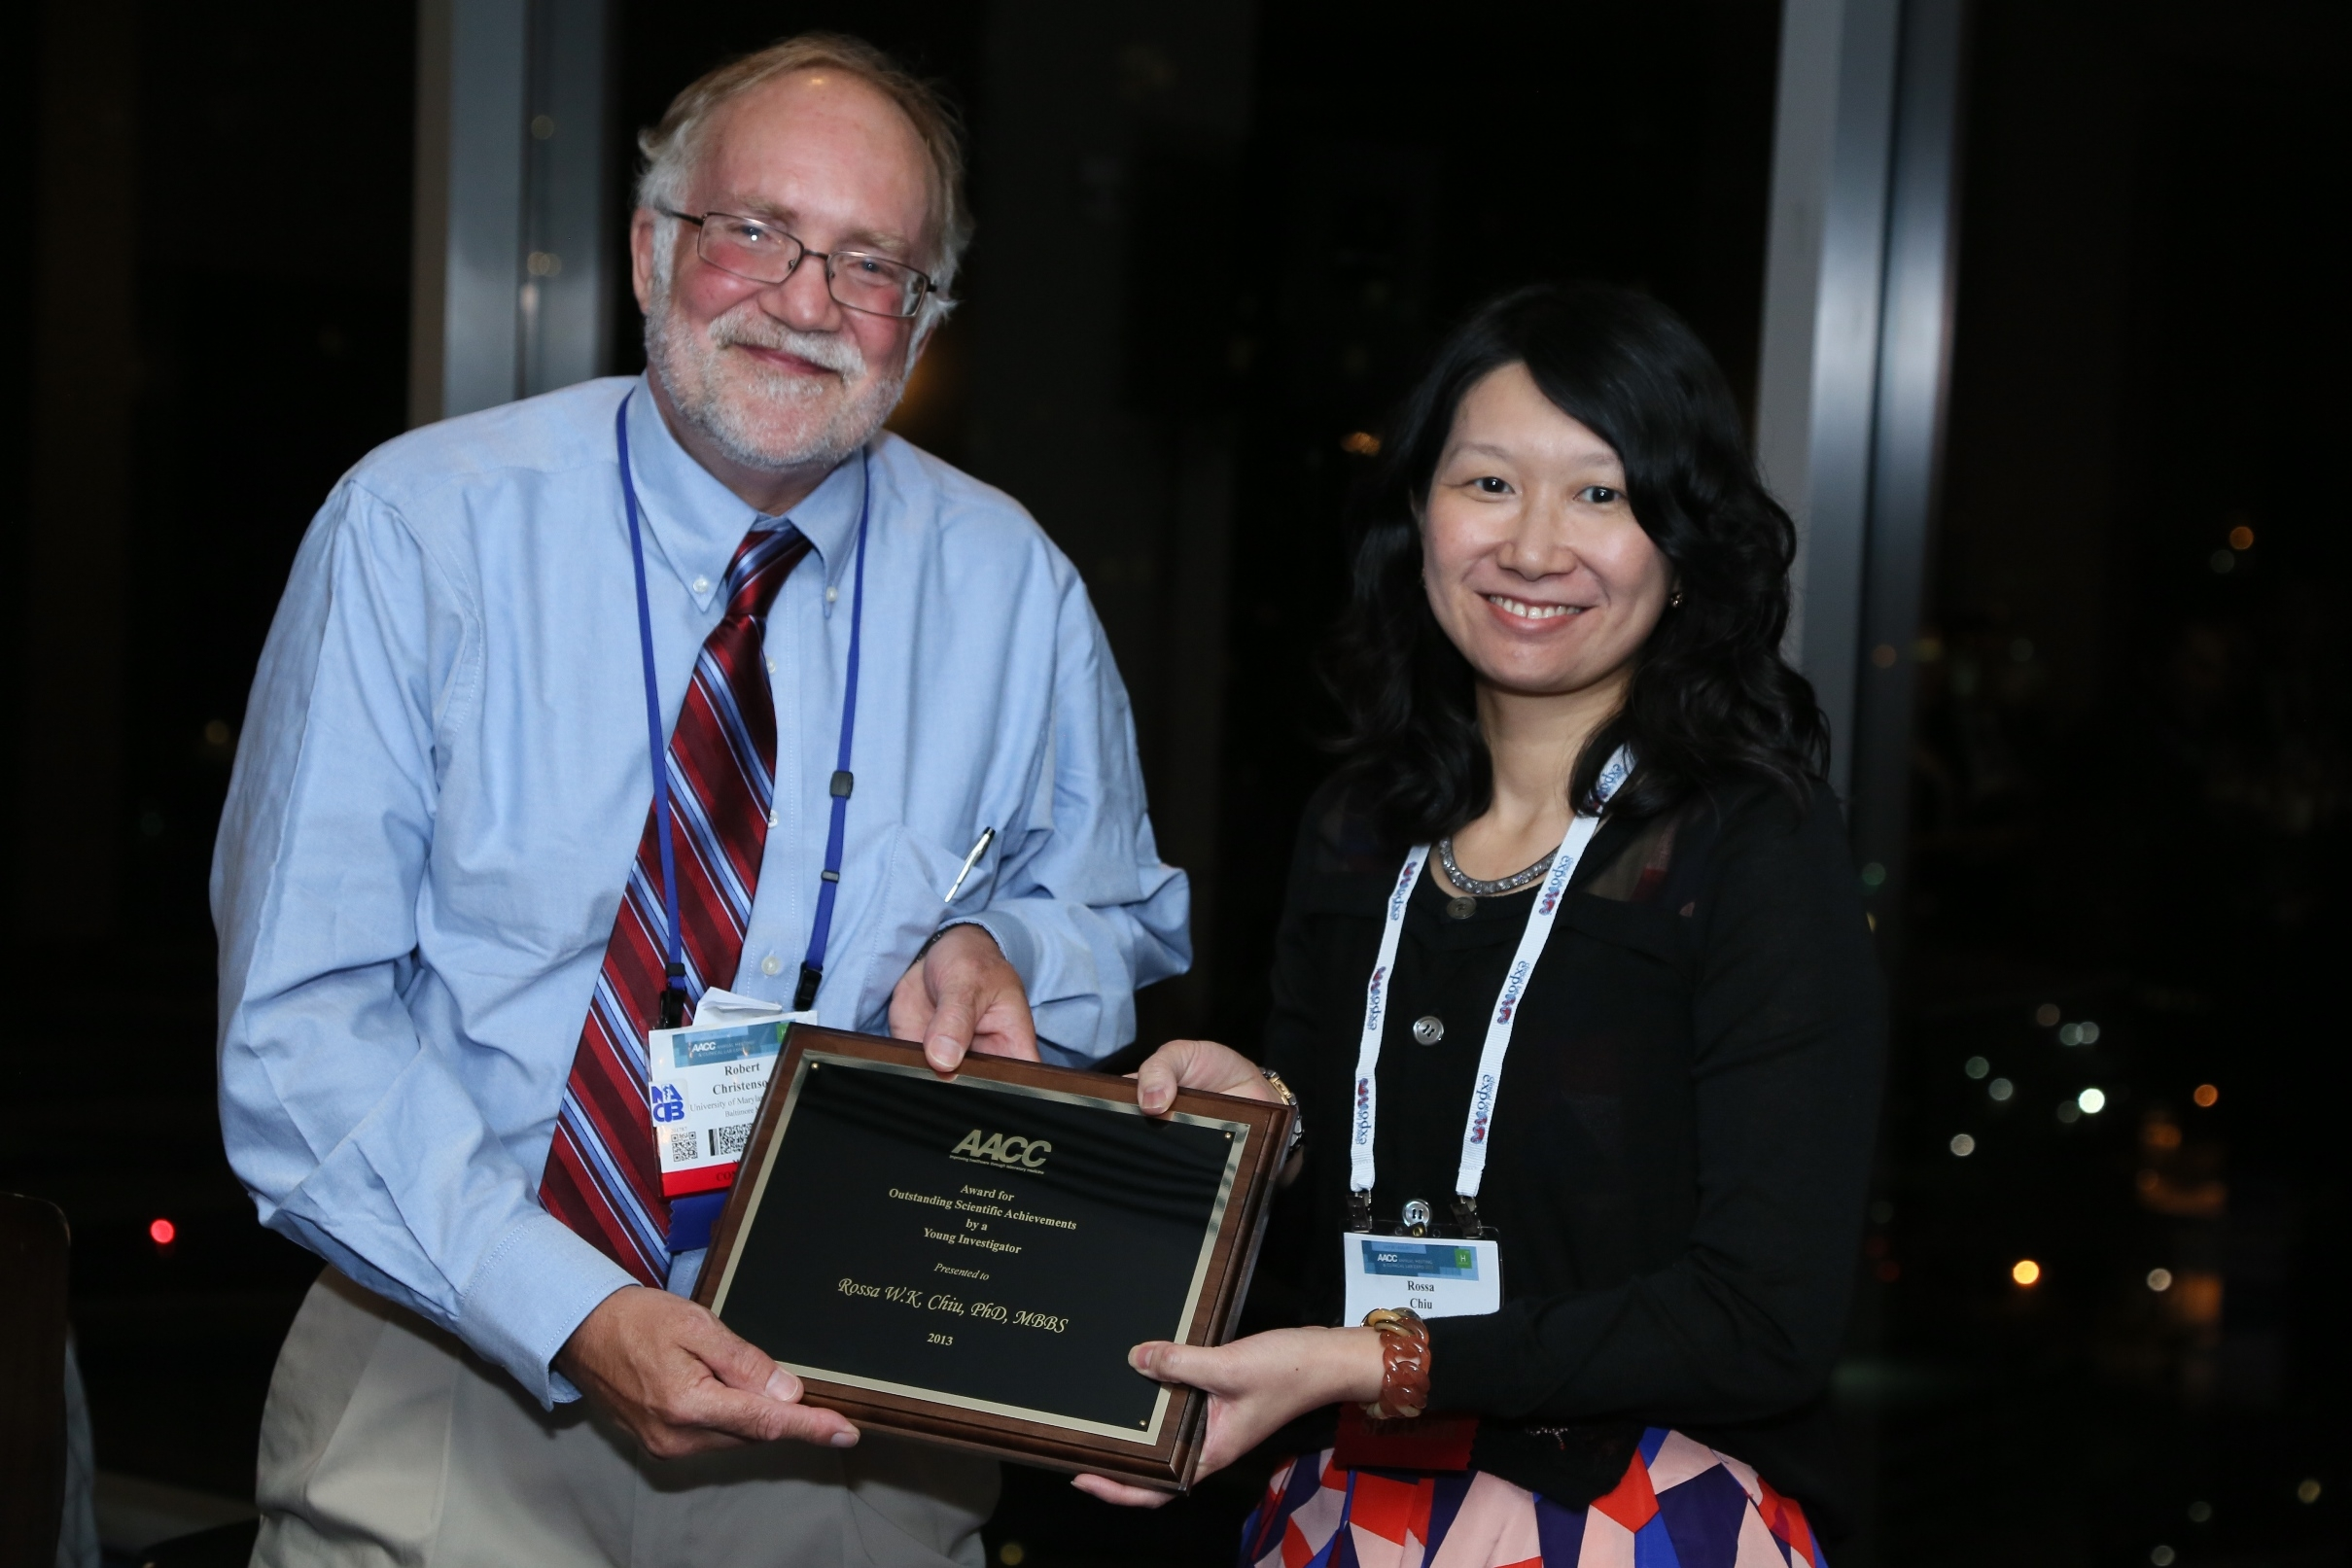 Dr. Robert Christenson, President of AACC, presents the award plaque to Prof. Rossa Chiu.